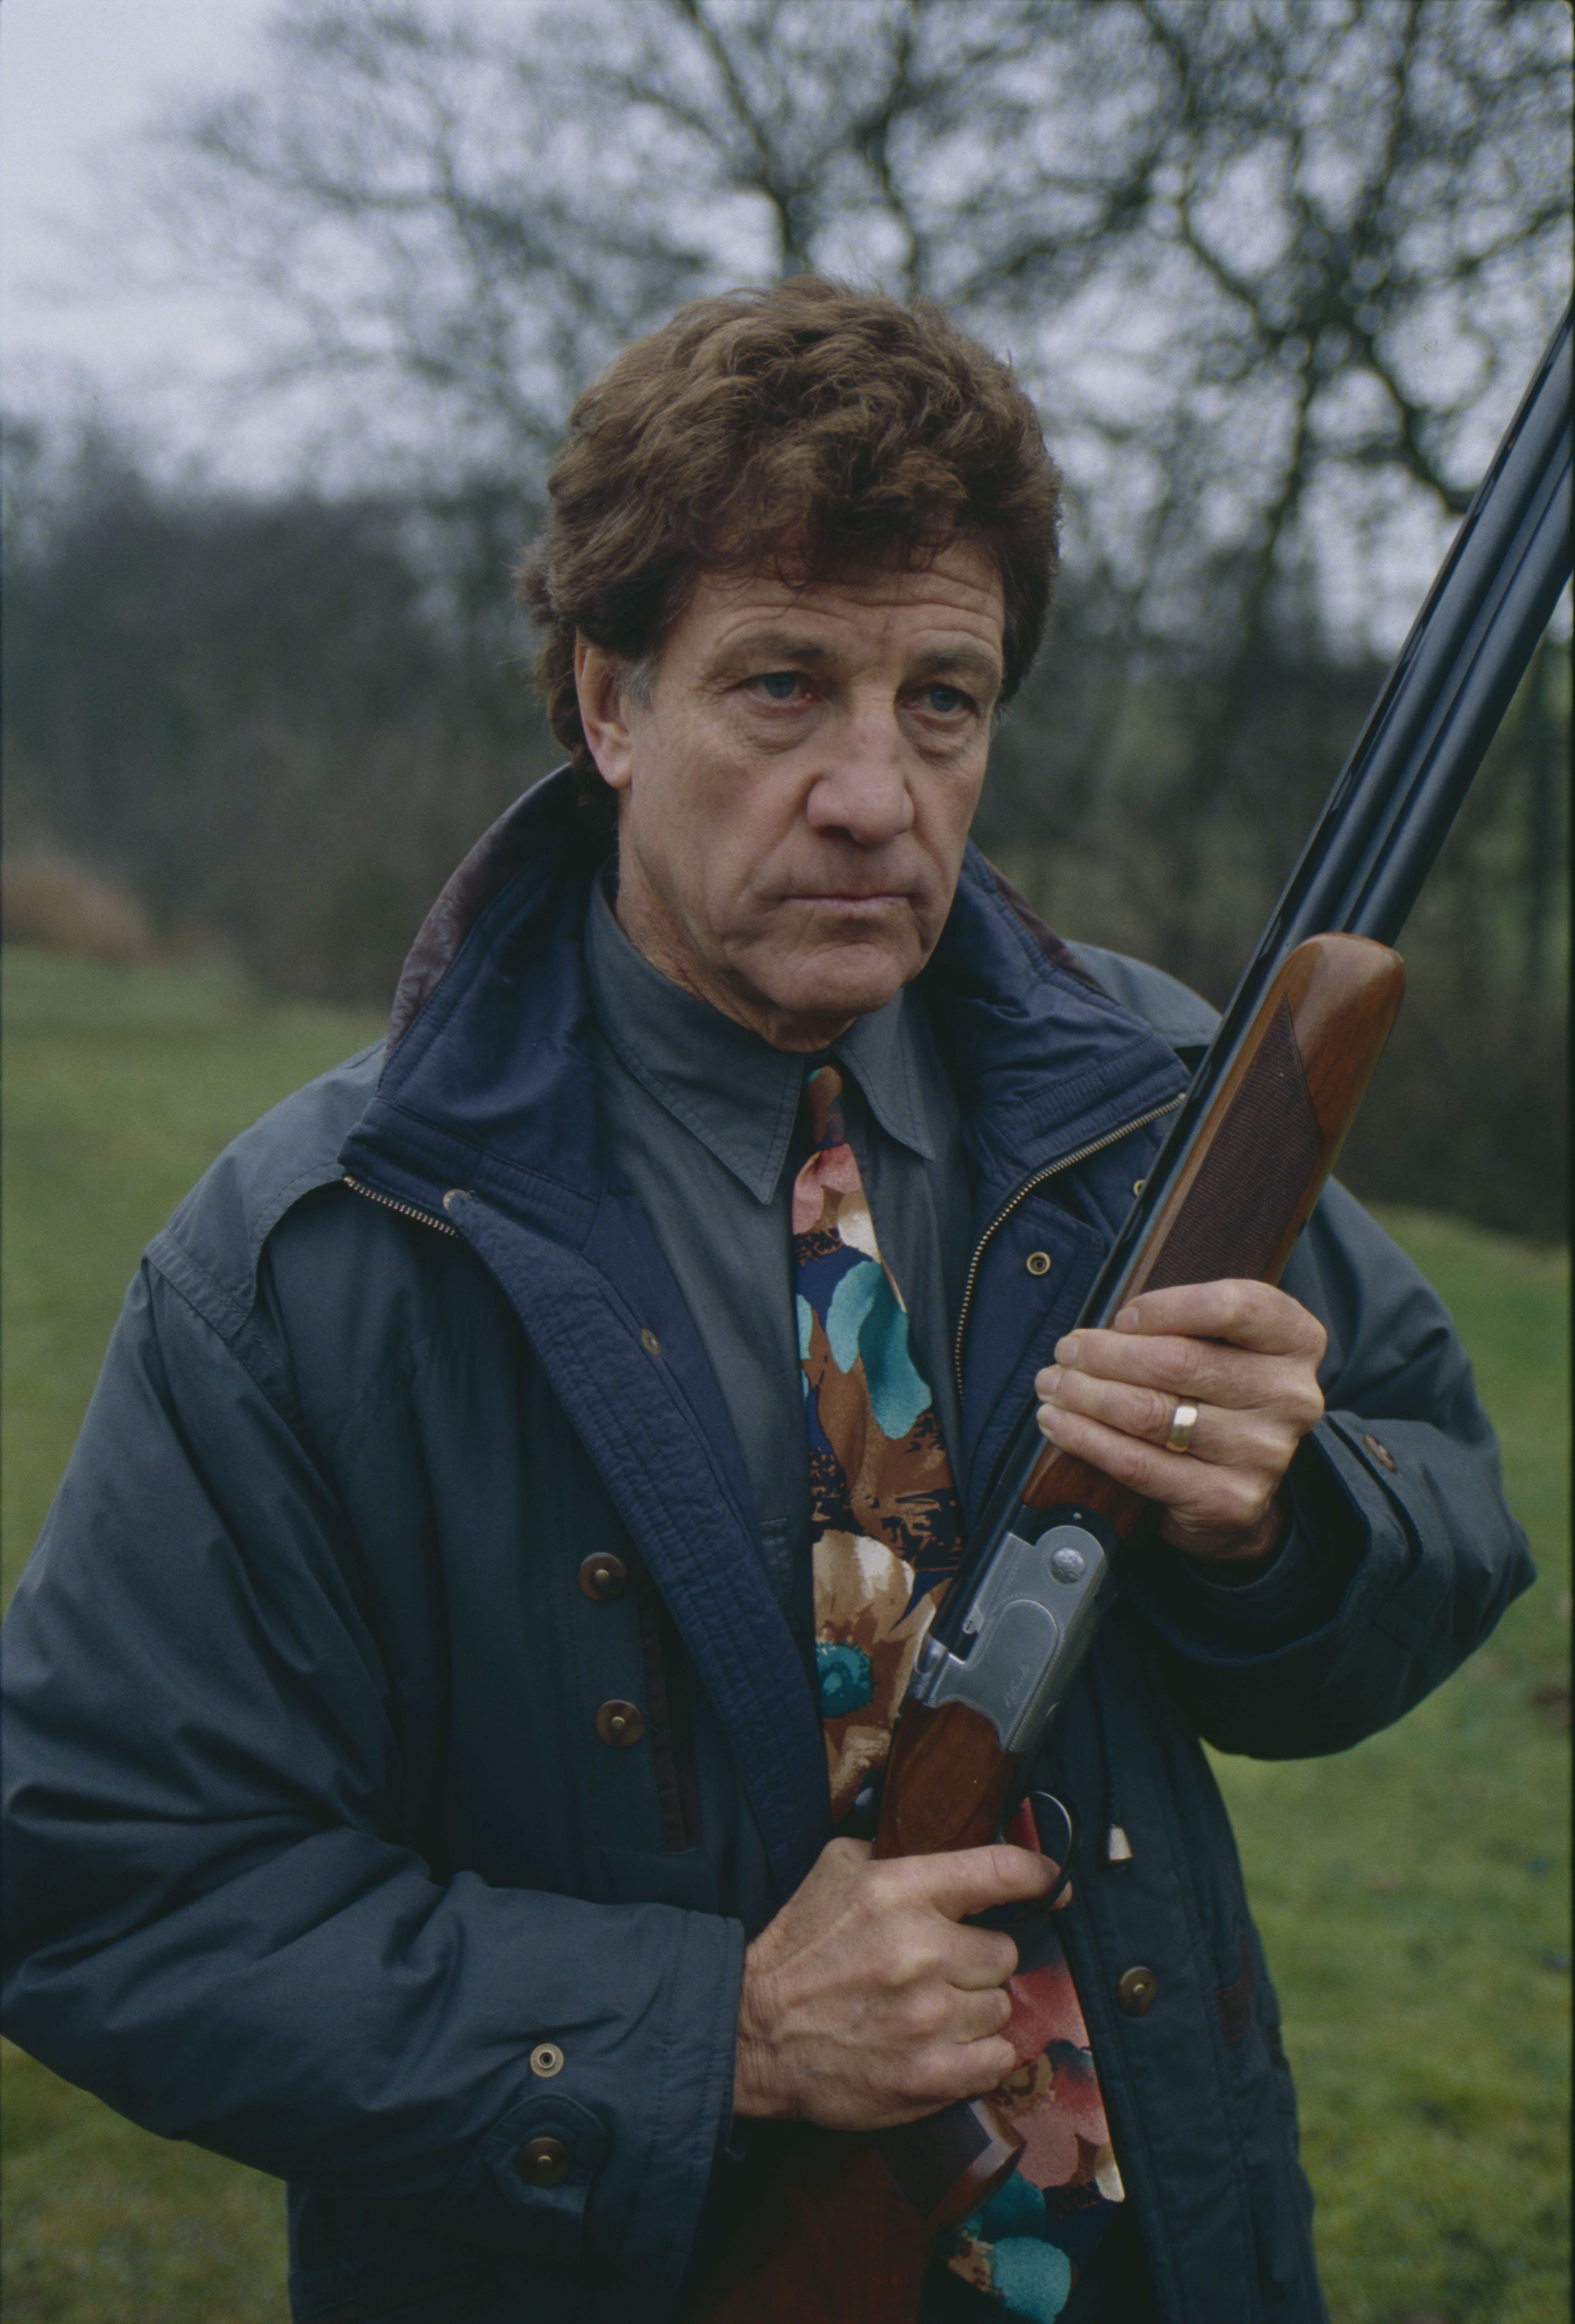 Editorial use only Mandatory Credit: Photo by ITV/Shutterstock (8067069i) Norman Bowler (as Frank Tate) as Frank threatens Pollard with a gun (Ep 1752 - 1st April 1993) 'Emmerdale' TV Series - 01 Apr 1993 Emmerdale Farm is a long-running British soap opera set in Emmerdale, a fictional village in the Yorkshire Dales. Created by Kevin Laffan, it first broadcast on 16 October 1972 and produced by ITV Yorkshire.